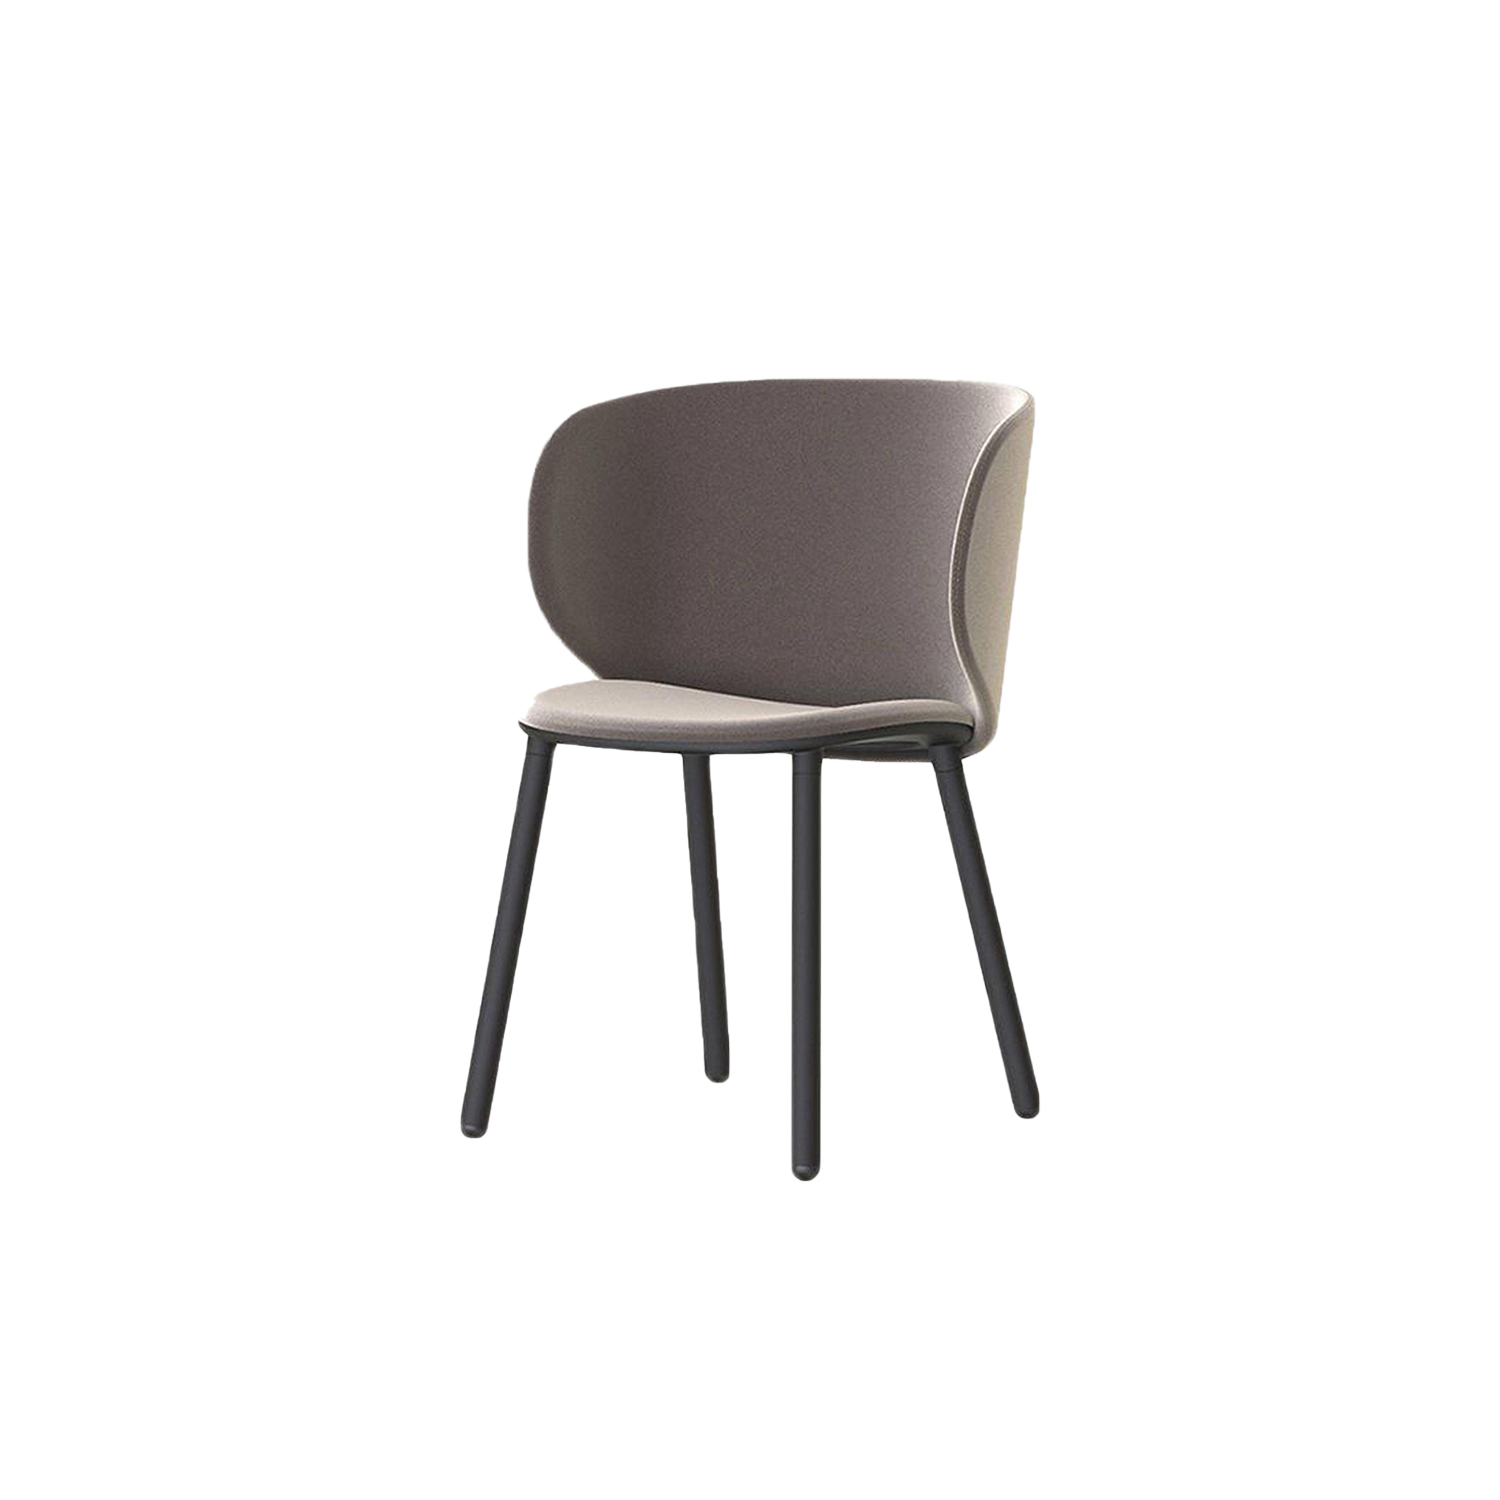 Dua Large Chair with Wooden Base  - The Berlin-based studio Läufer & Keichel has created a chair for Kristalia with soft, embracing lines. The name recalls the number two, which recurs throughout the design project starting with the two elliptical surfaces of the seat and backrest, which sensually revolves around the seat. Available with a slide-frame base or with four solid wood legs, the chair and armchair can be upholstered with the fabrics and leather in the catalogue, with the option of different upholstery for the seat and backrest to create contrasting or matching combinations. A range of materials, colours and finishes are available in a number of combinations. Prices may vary. Please enquire for full details.  | Matter of Stuff